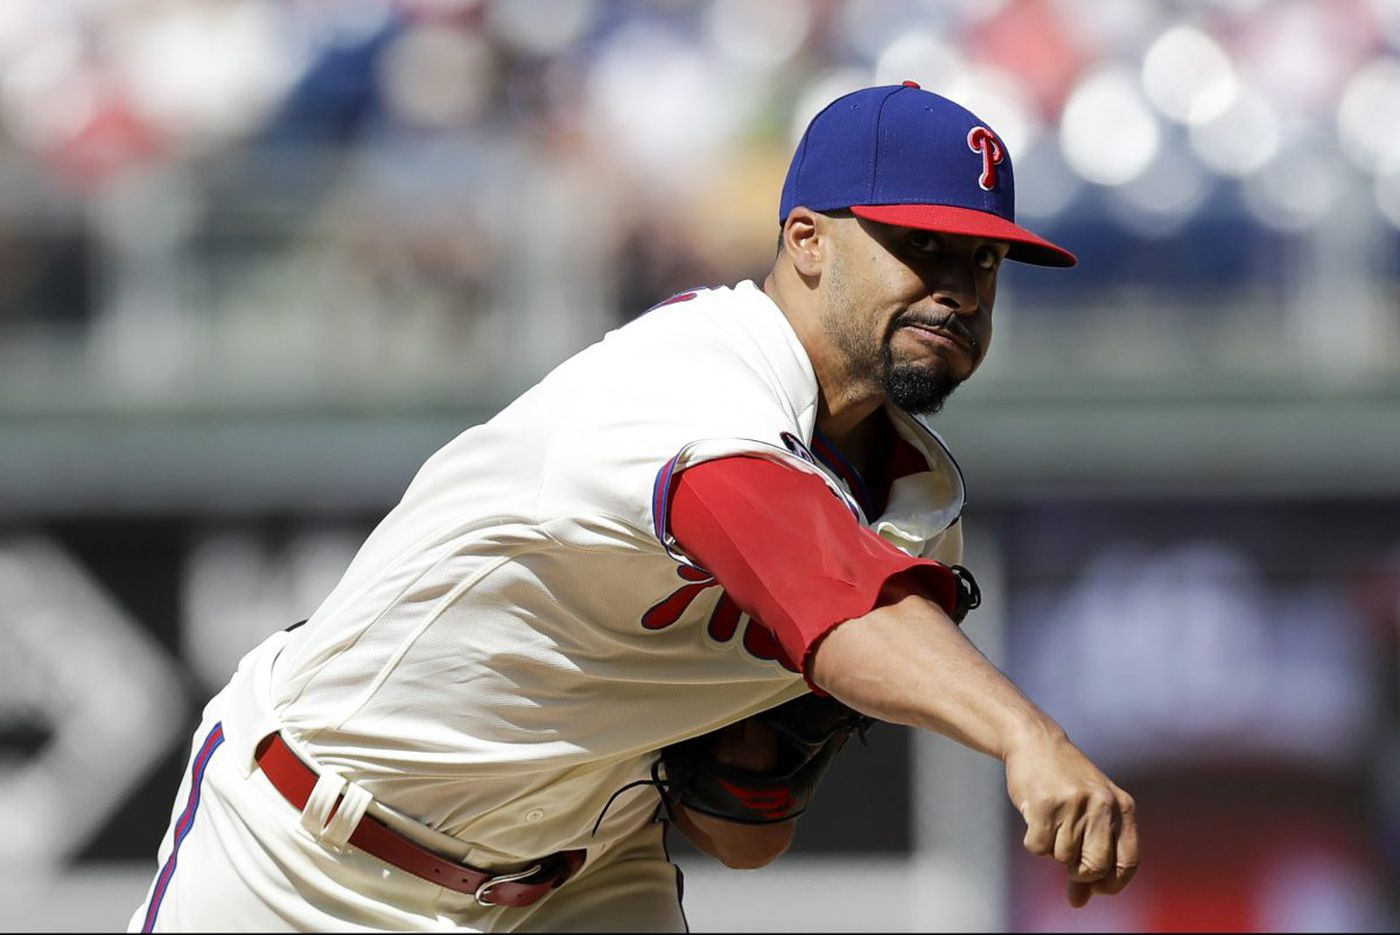 Phillies reliever Jesen Therrien might miss all of 2018